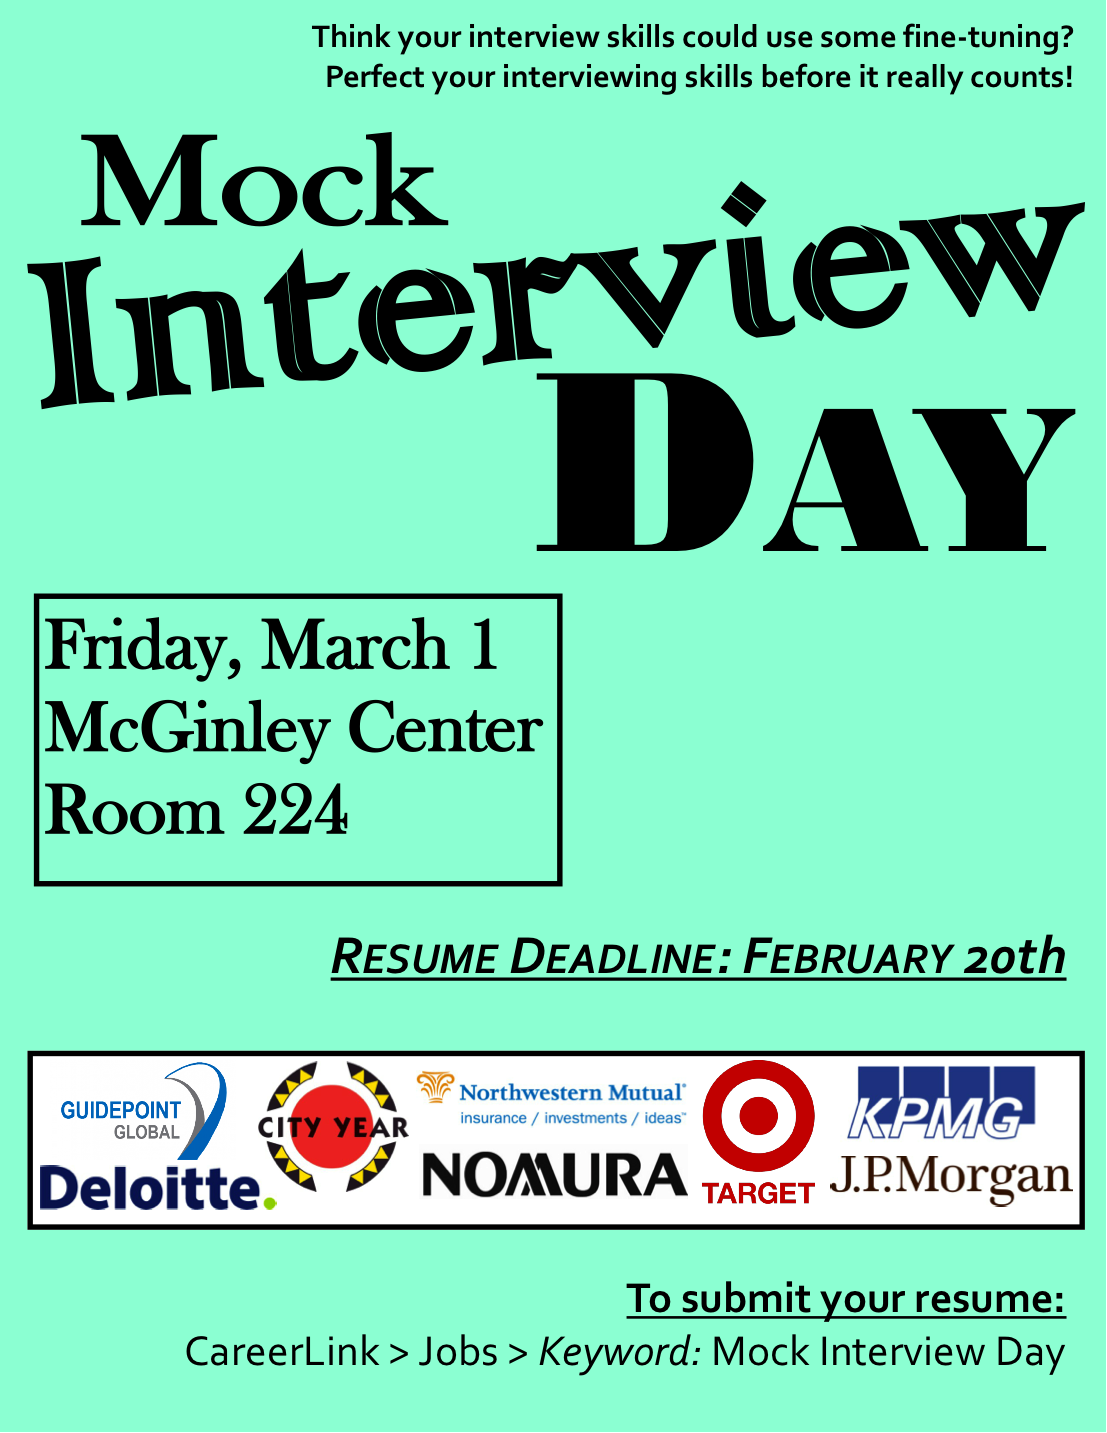 fordham career services blog last chance mock interview day to make sure you reserve your spot for an interview on friday please call laura greenbaum directly at 718 817 4366 space is limited so register asap